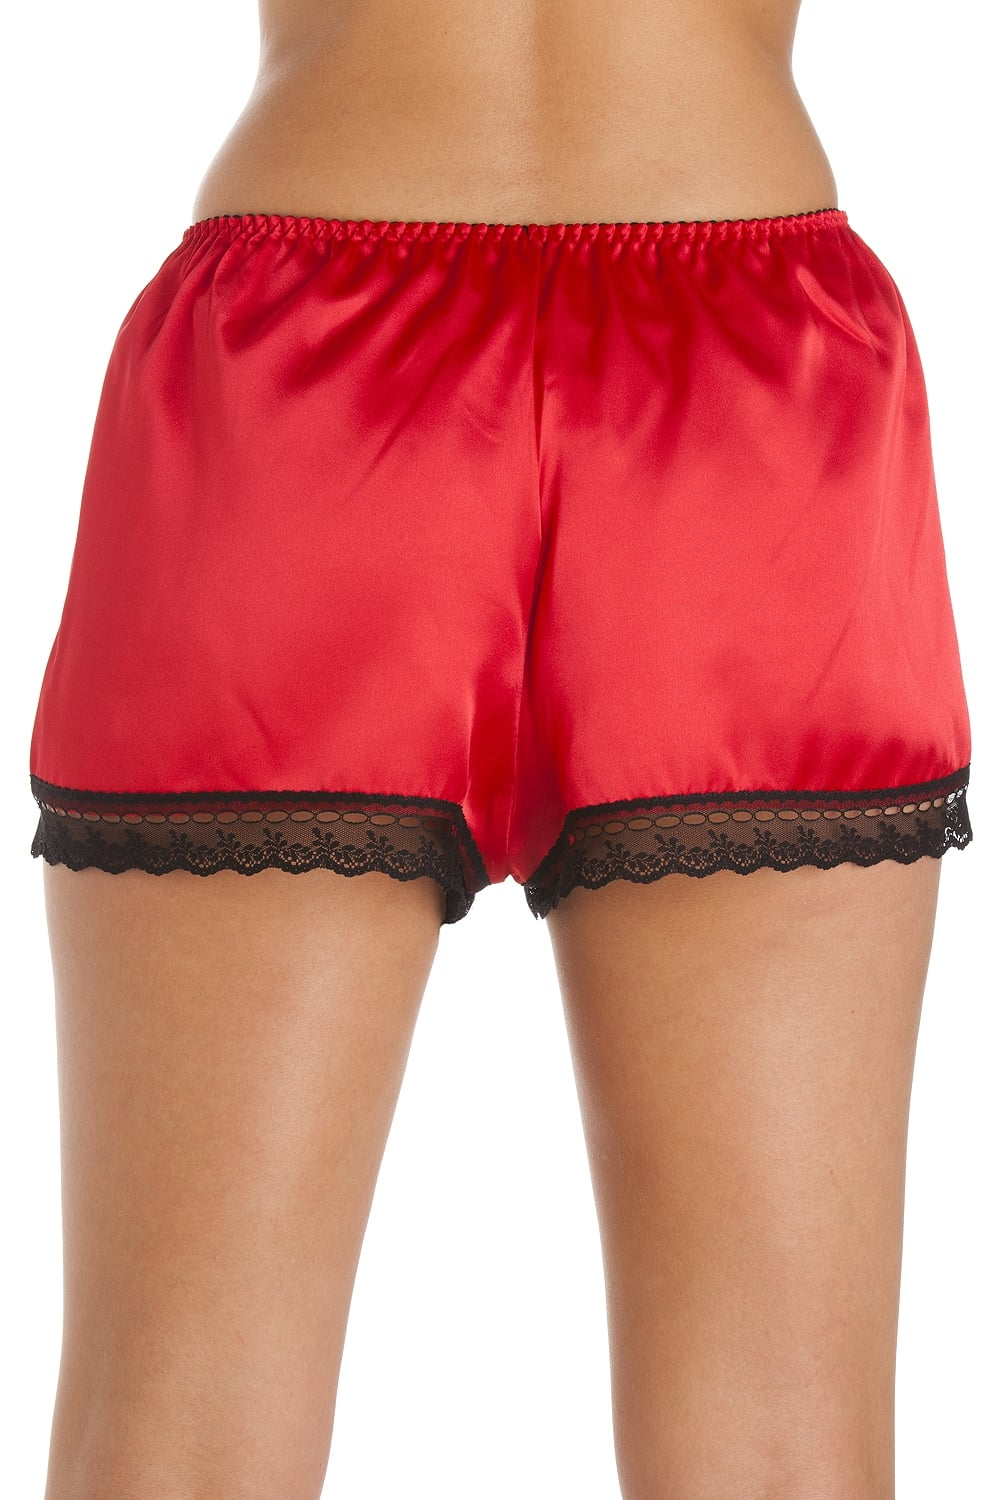 Luxury Red Satin French Knicker Shorts